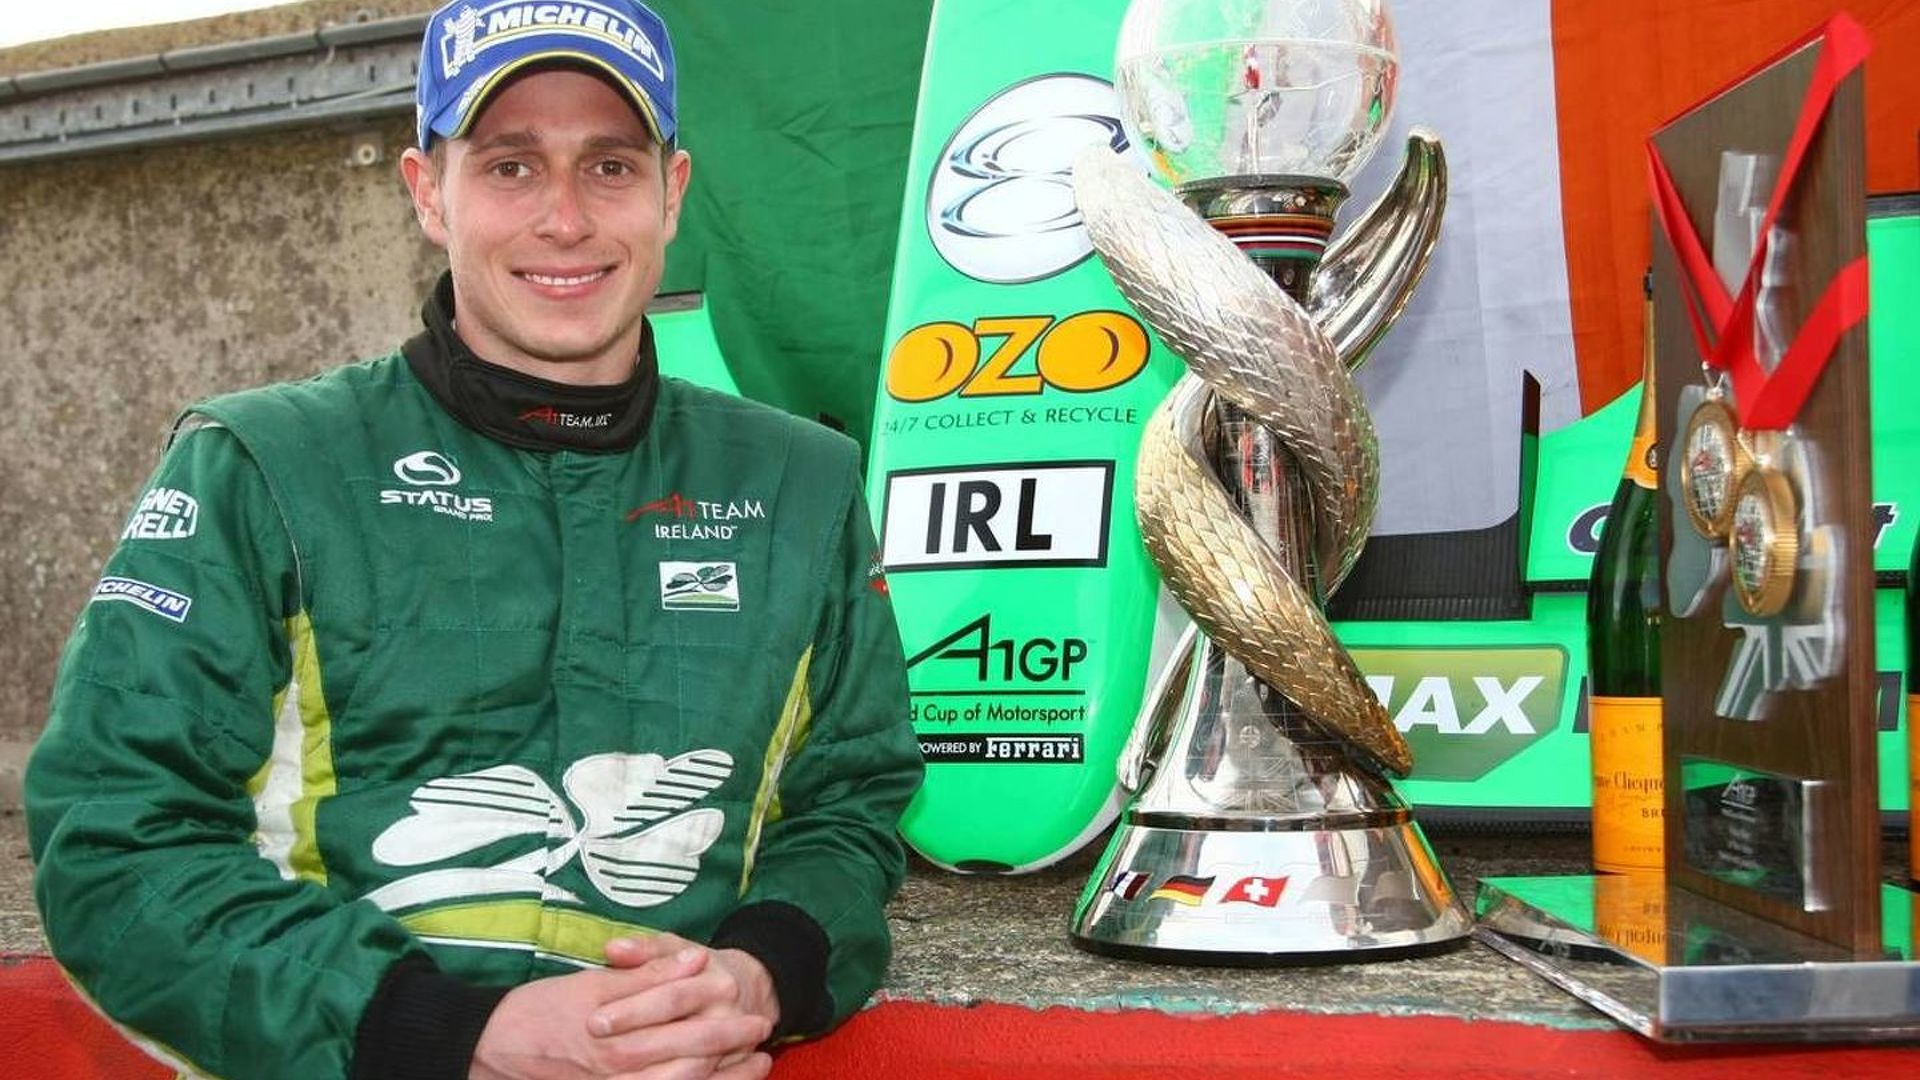 A1GP Champion Carroll reveals 2010 talks with new F1 team